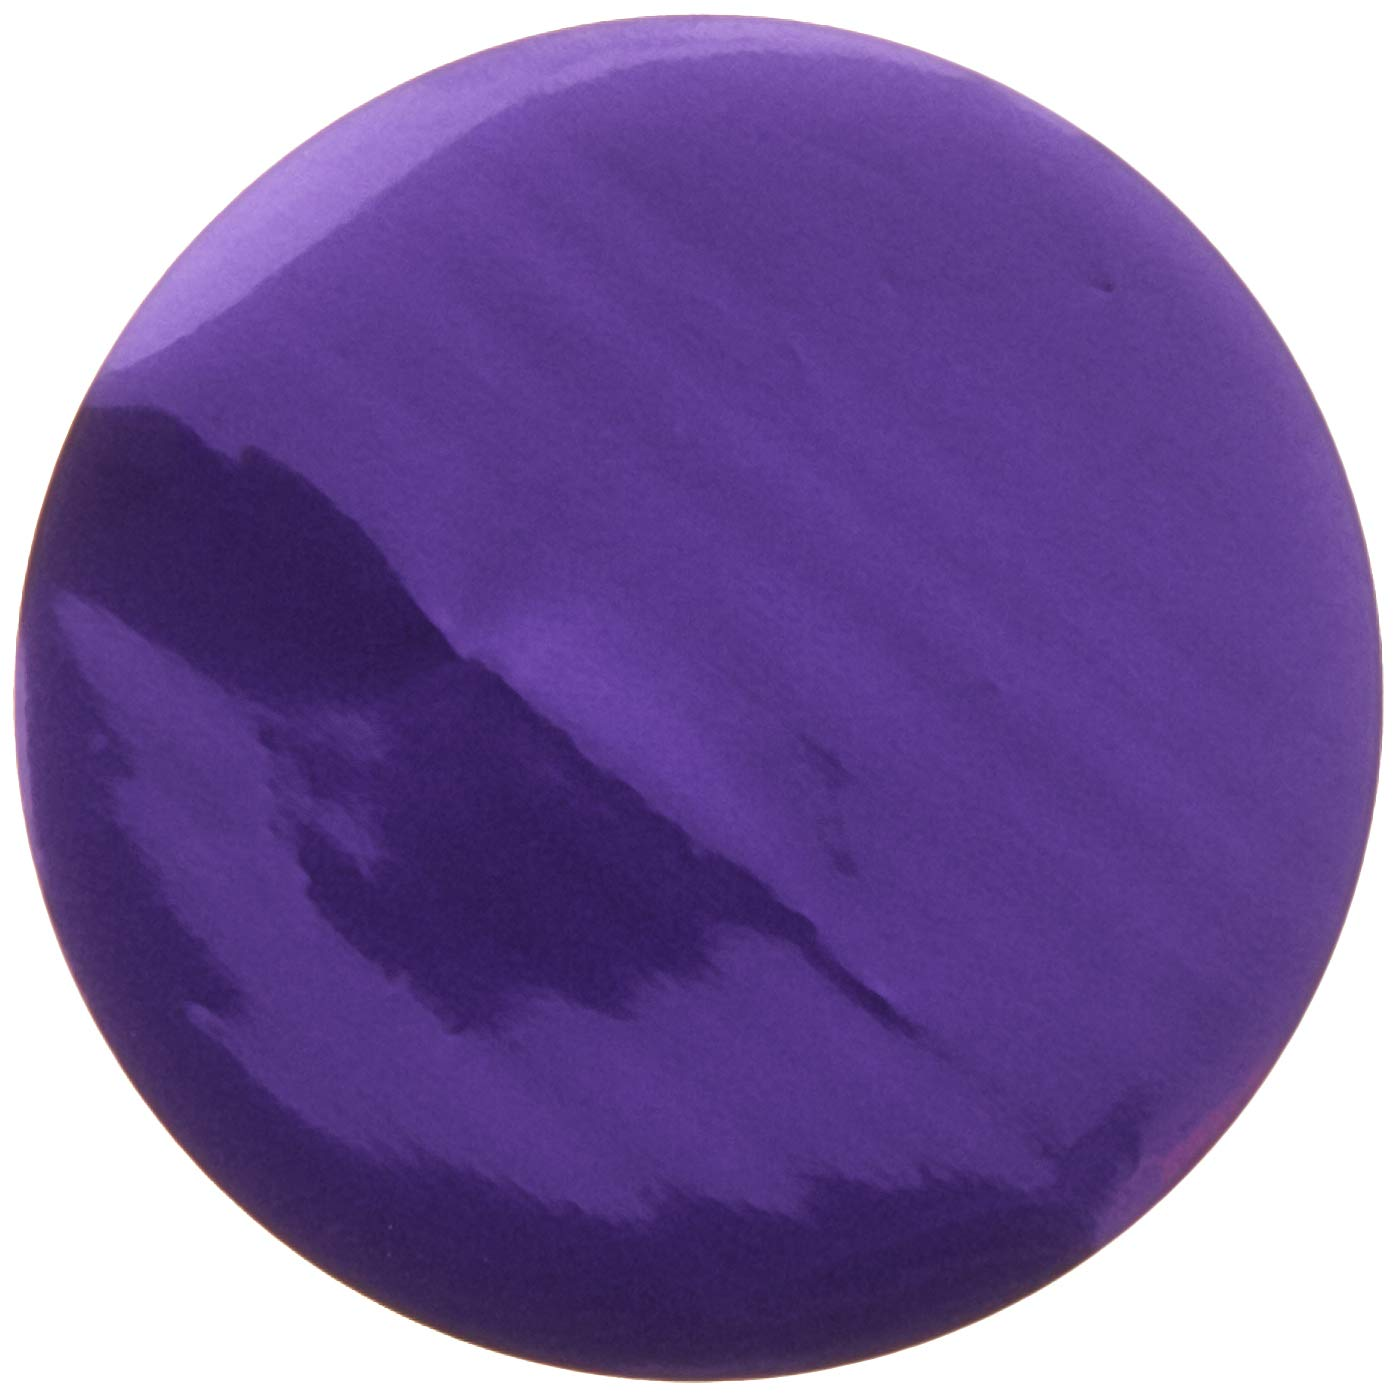 Mettoo Imperial Purple Body Foil Festival Pro, 1000 Count by Mettoo (Image #2)